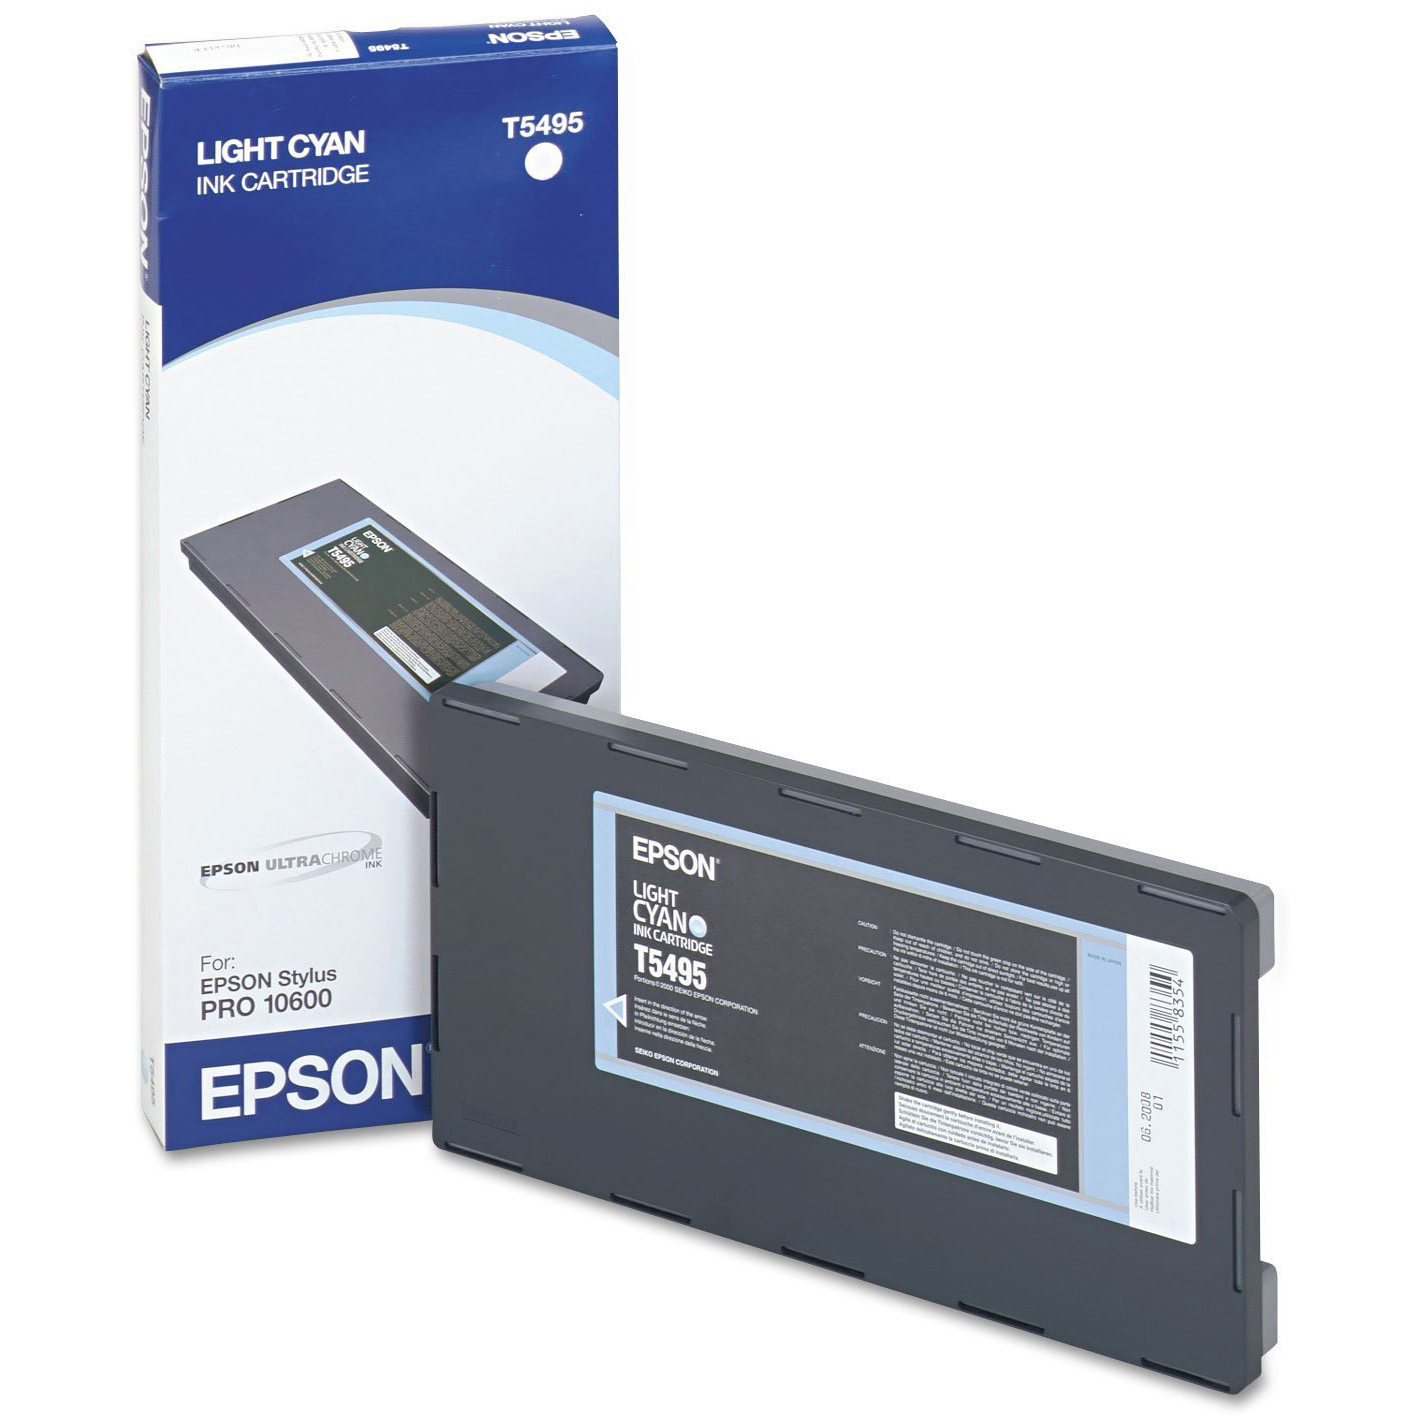 Original Epson T5495 Light Cyan Ink Cartridge (C13T549500)